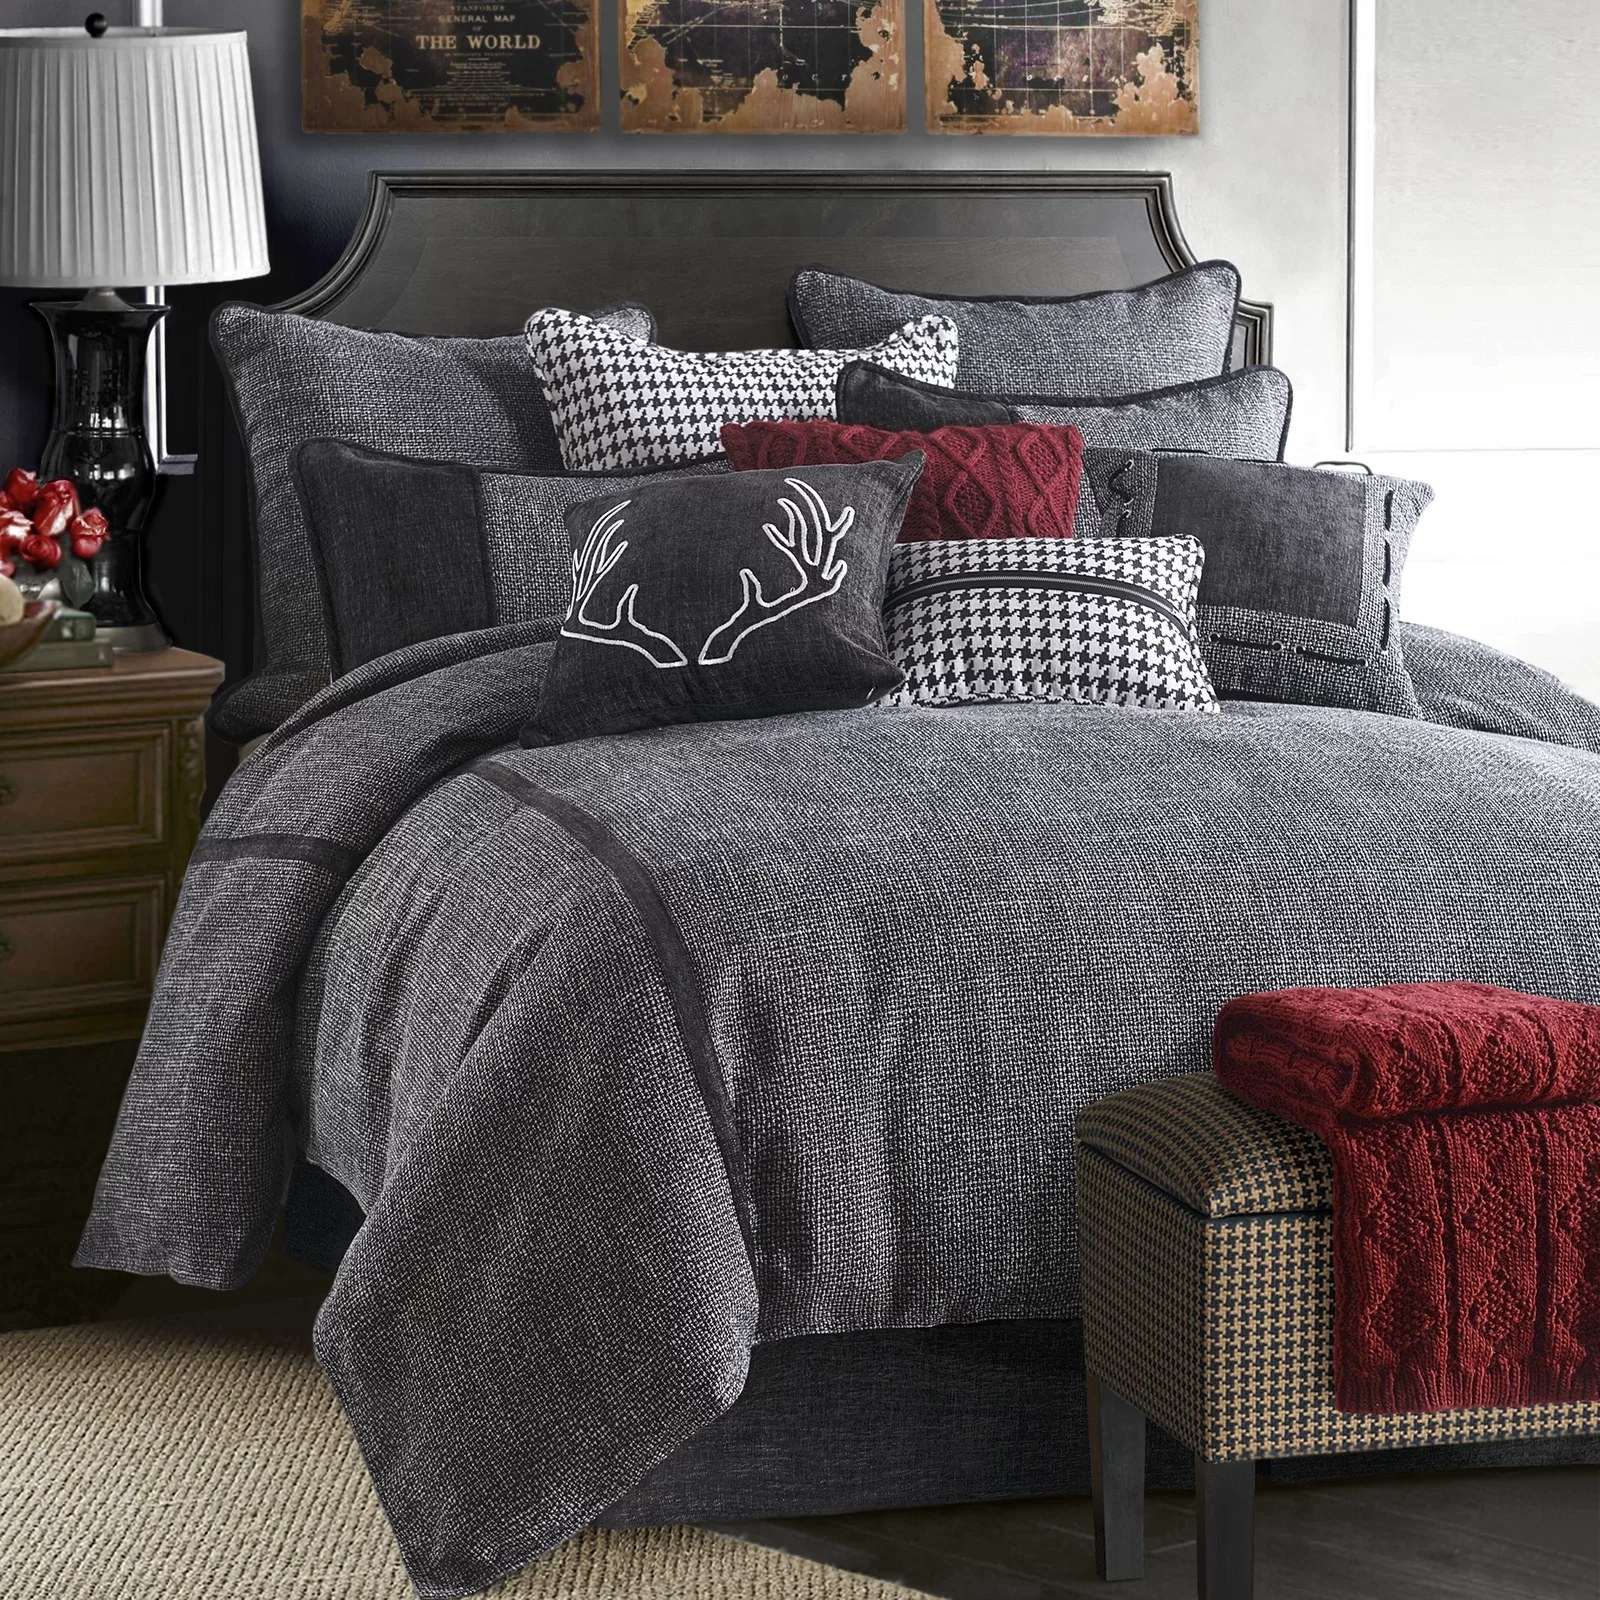 The comforter set fitted on a made bed